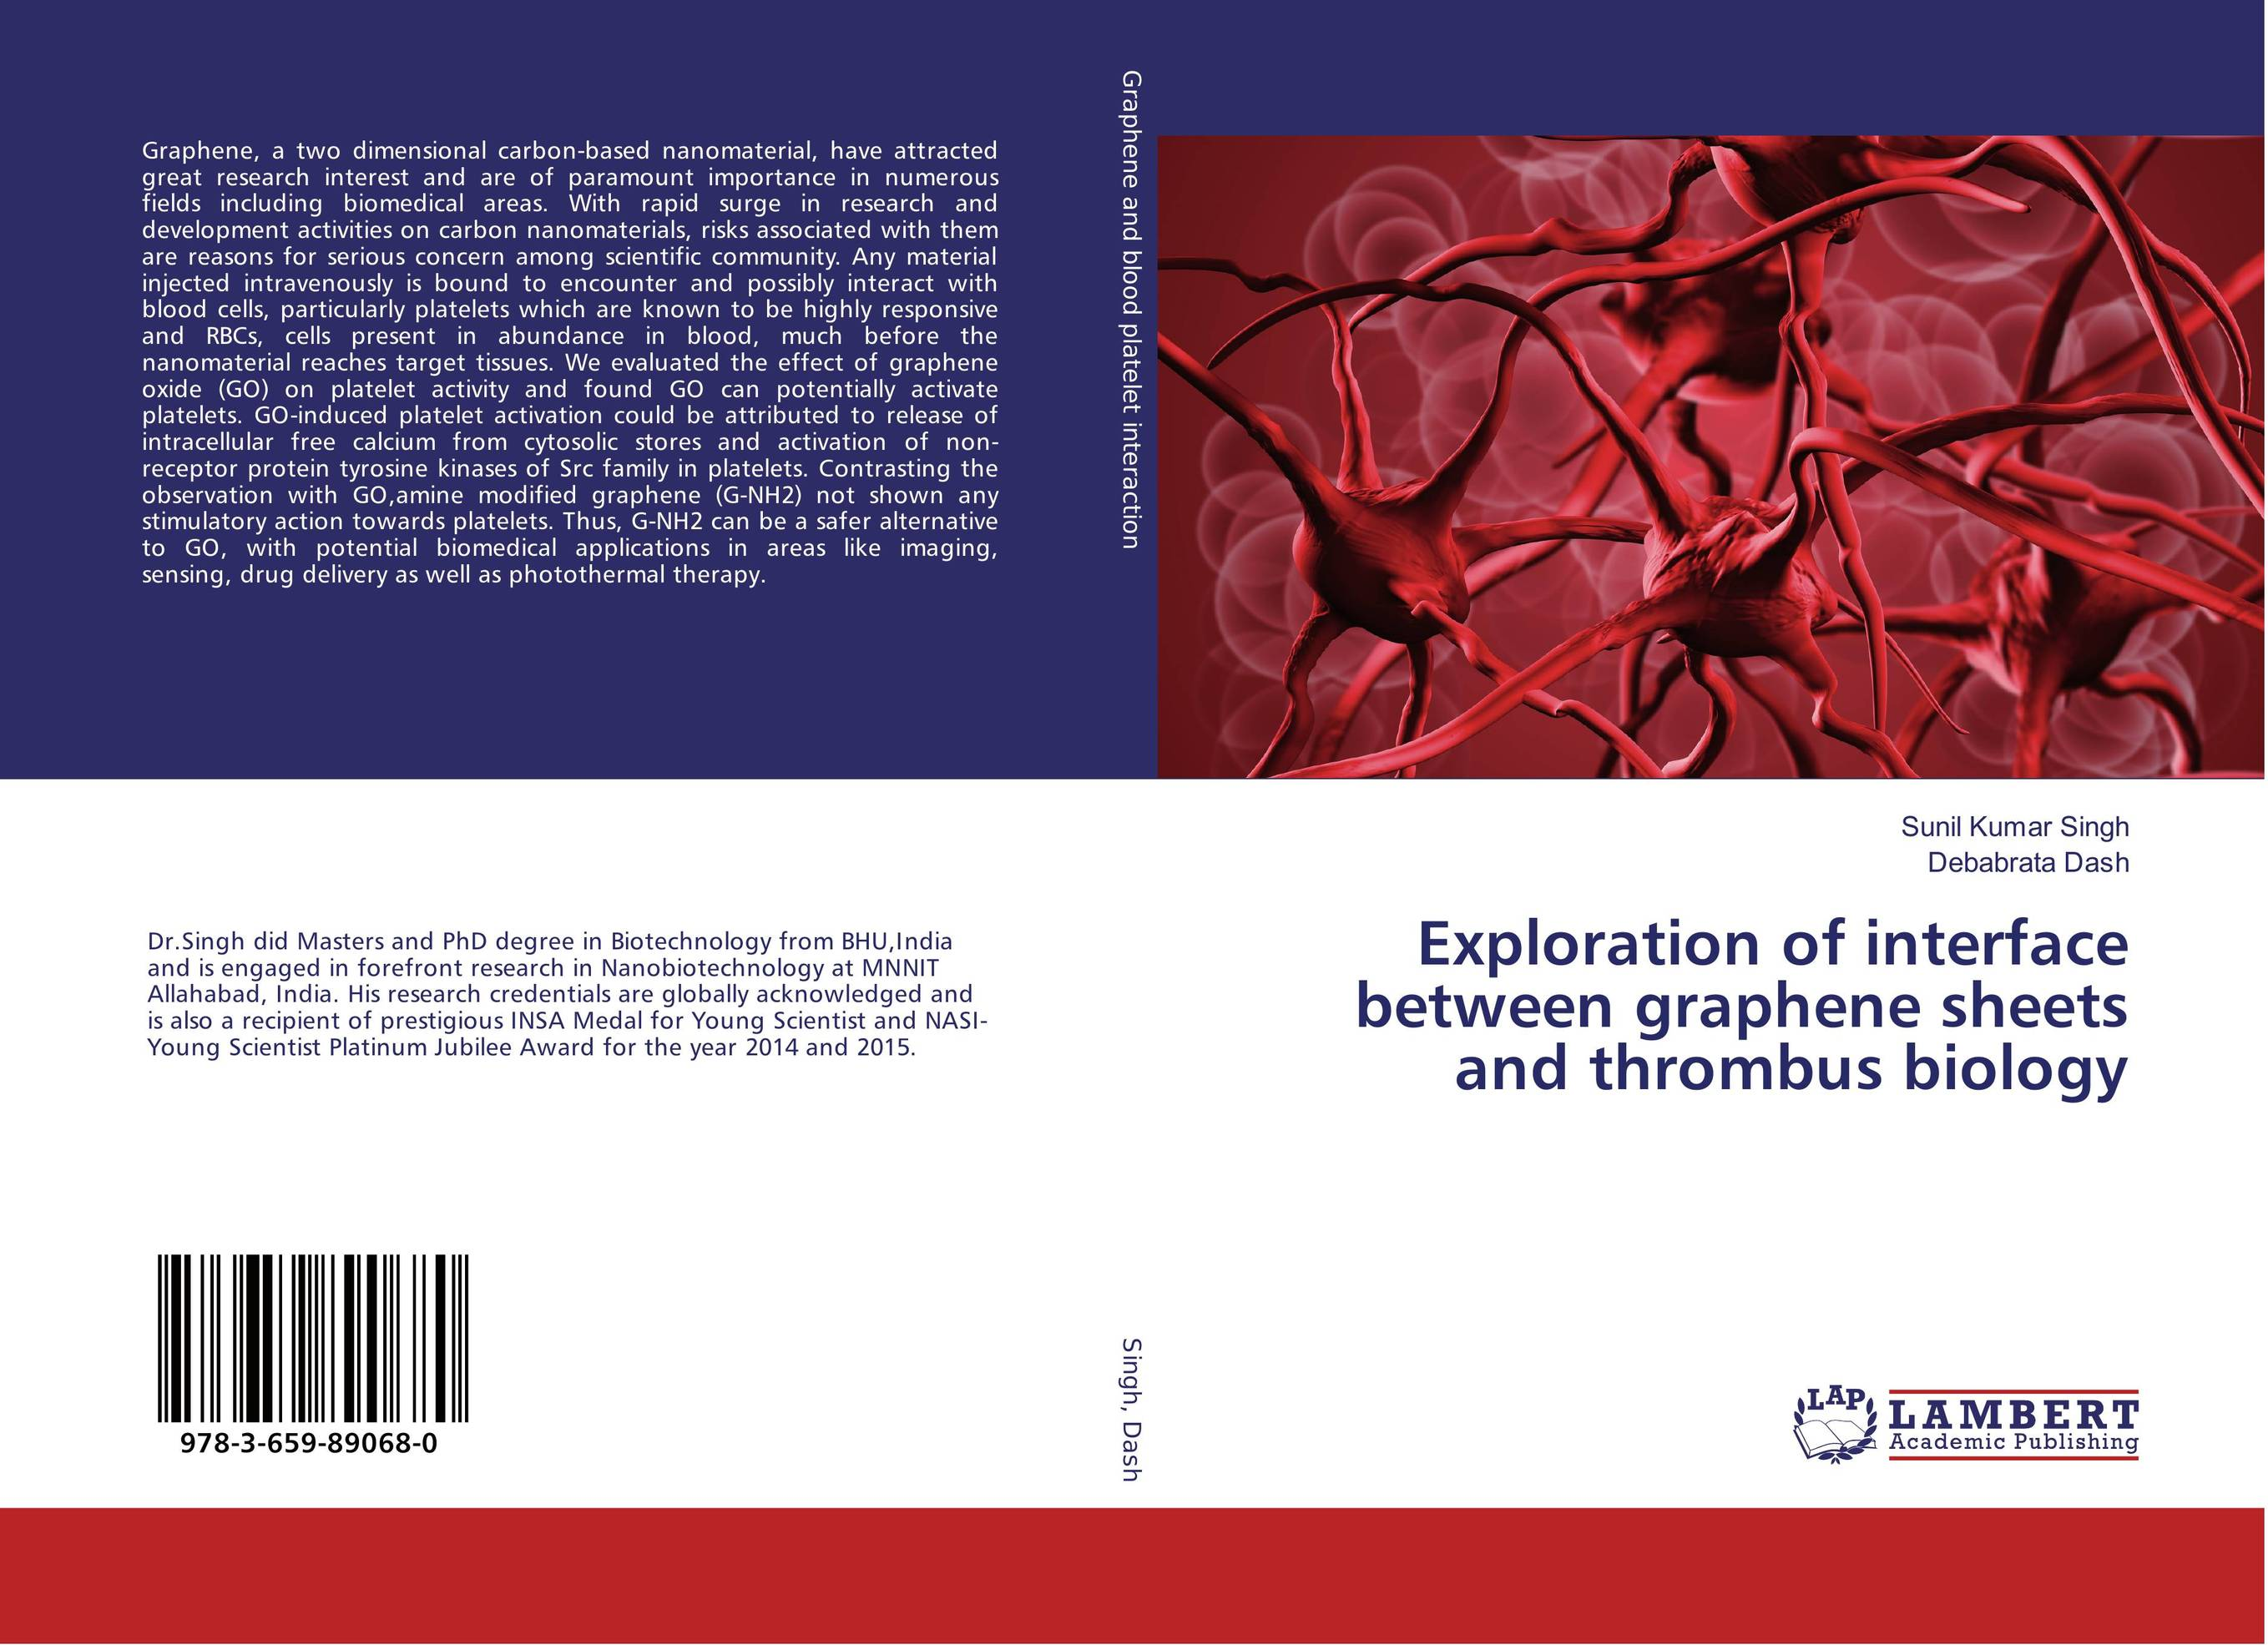 Exploration of interface between graphene sheets and thrombus biology a role of tec a non receptor tyrosine kinase as apoptotic regulator